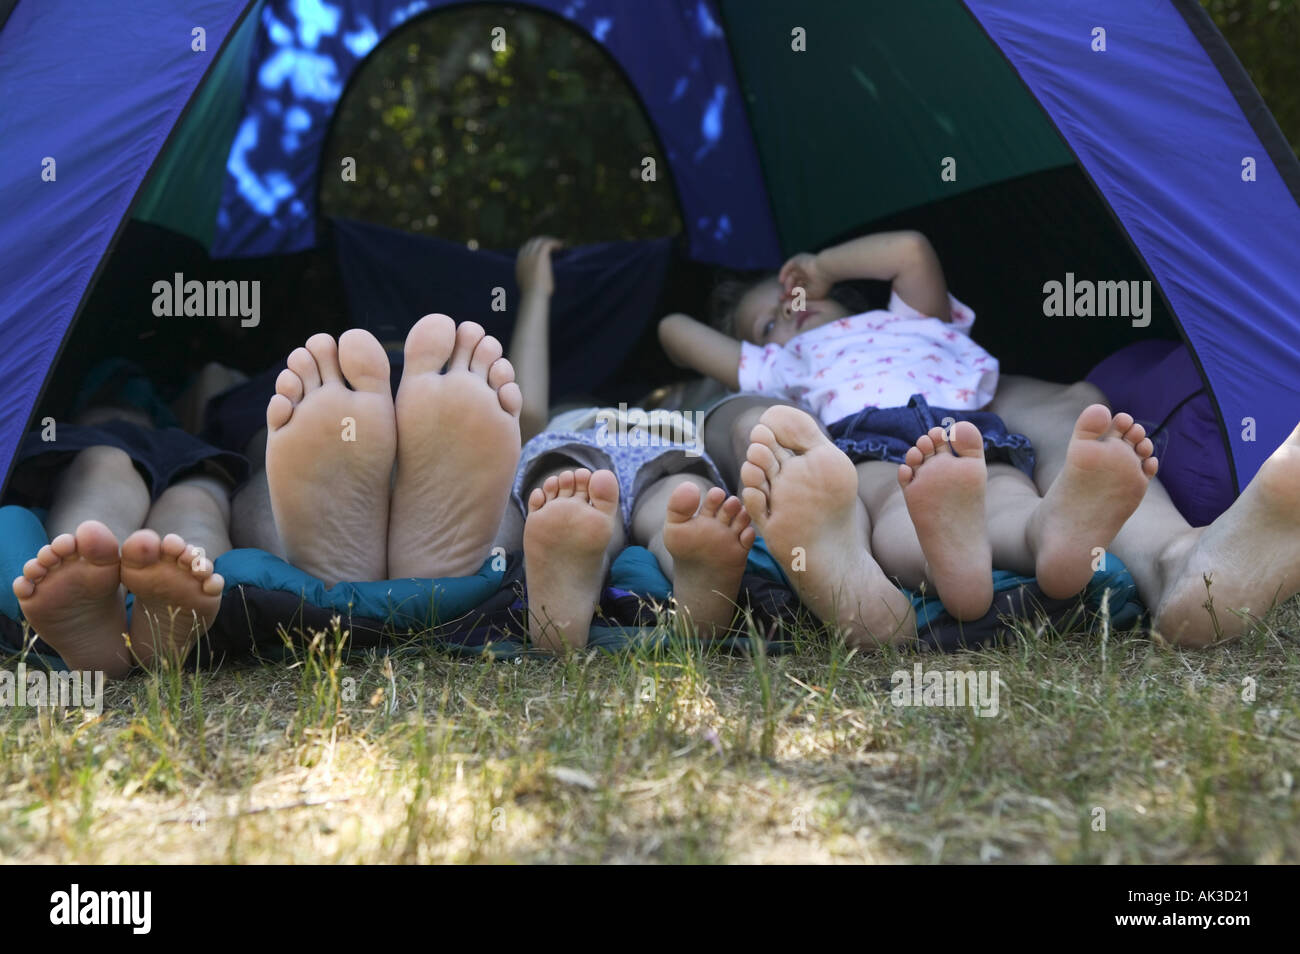 Family s feet sticking out of tent on camping trip Stock ...